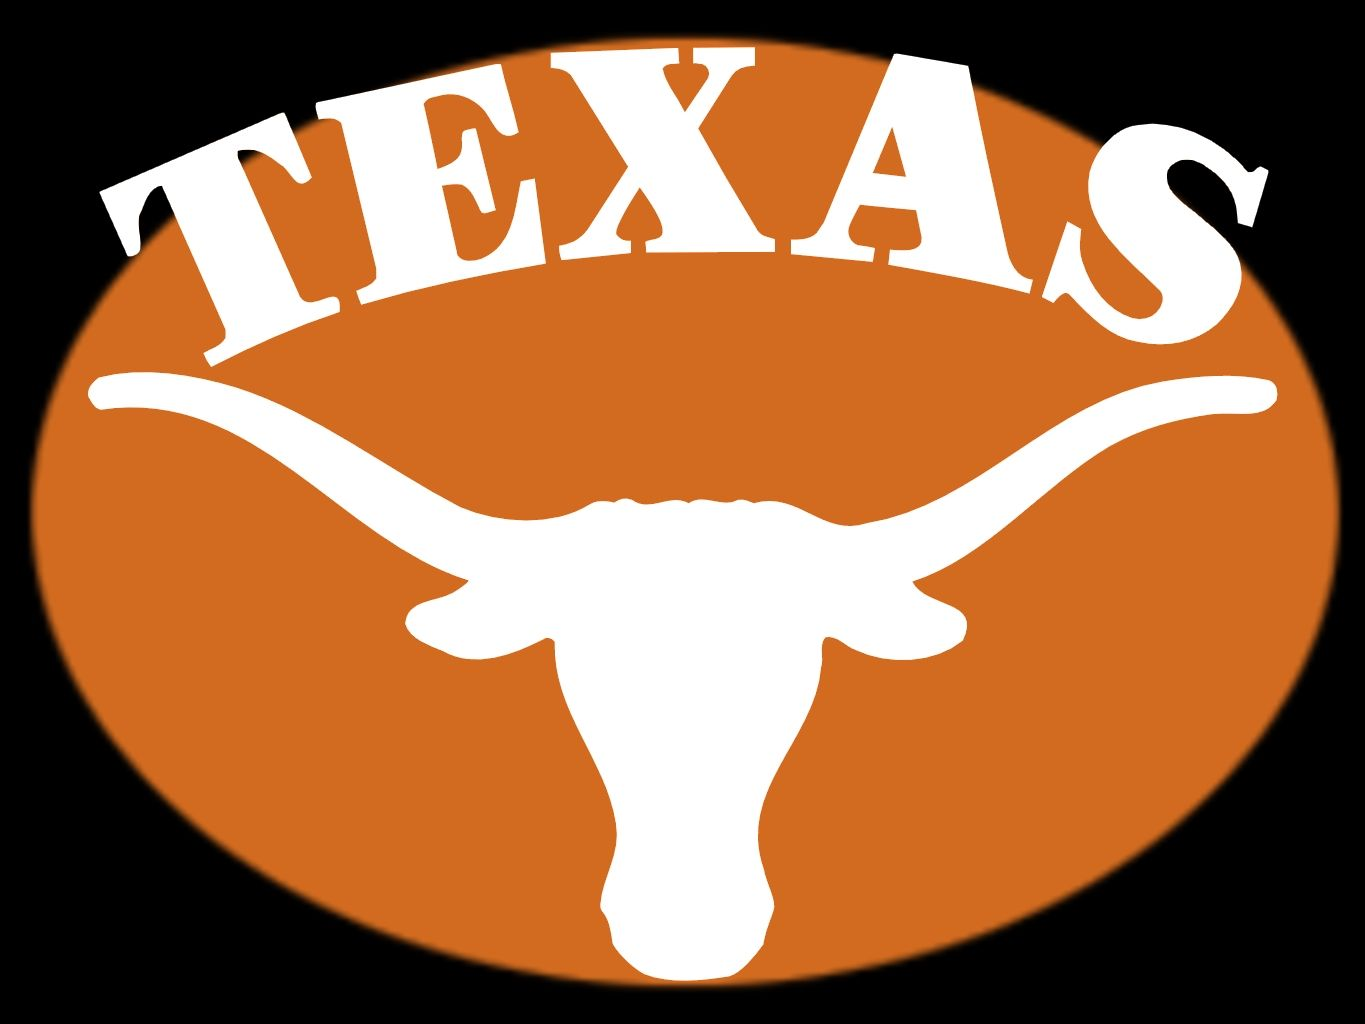 texas longhorns logo images google search interesting things to rh pinterest com texas longhorns logos pictures texas longhorns logos pictures